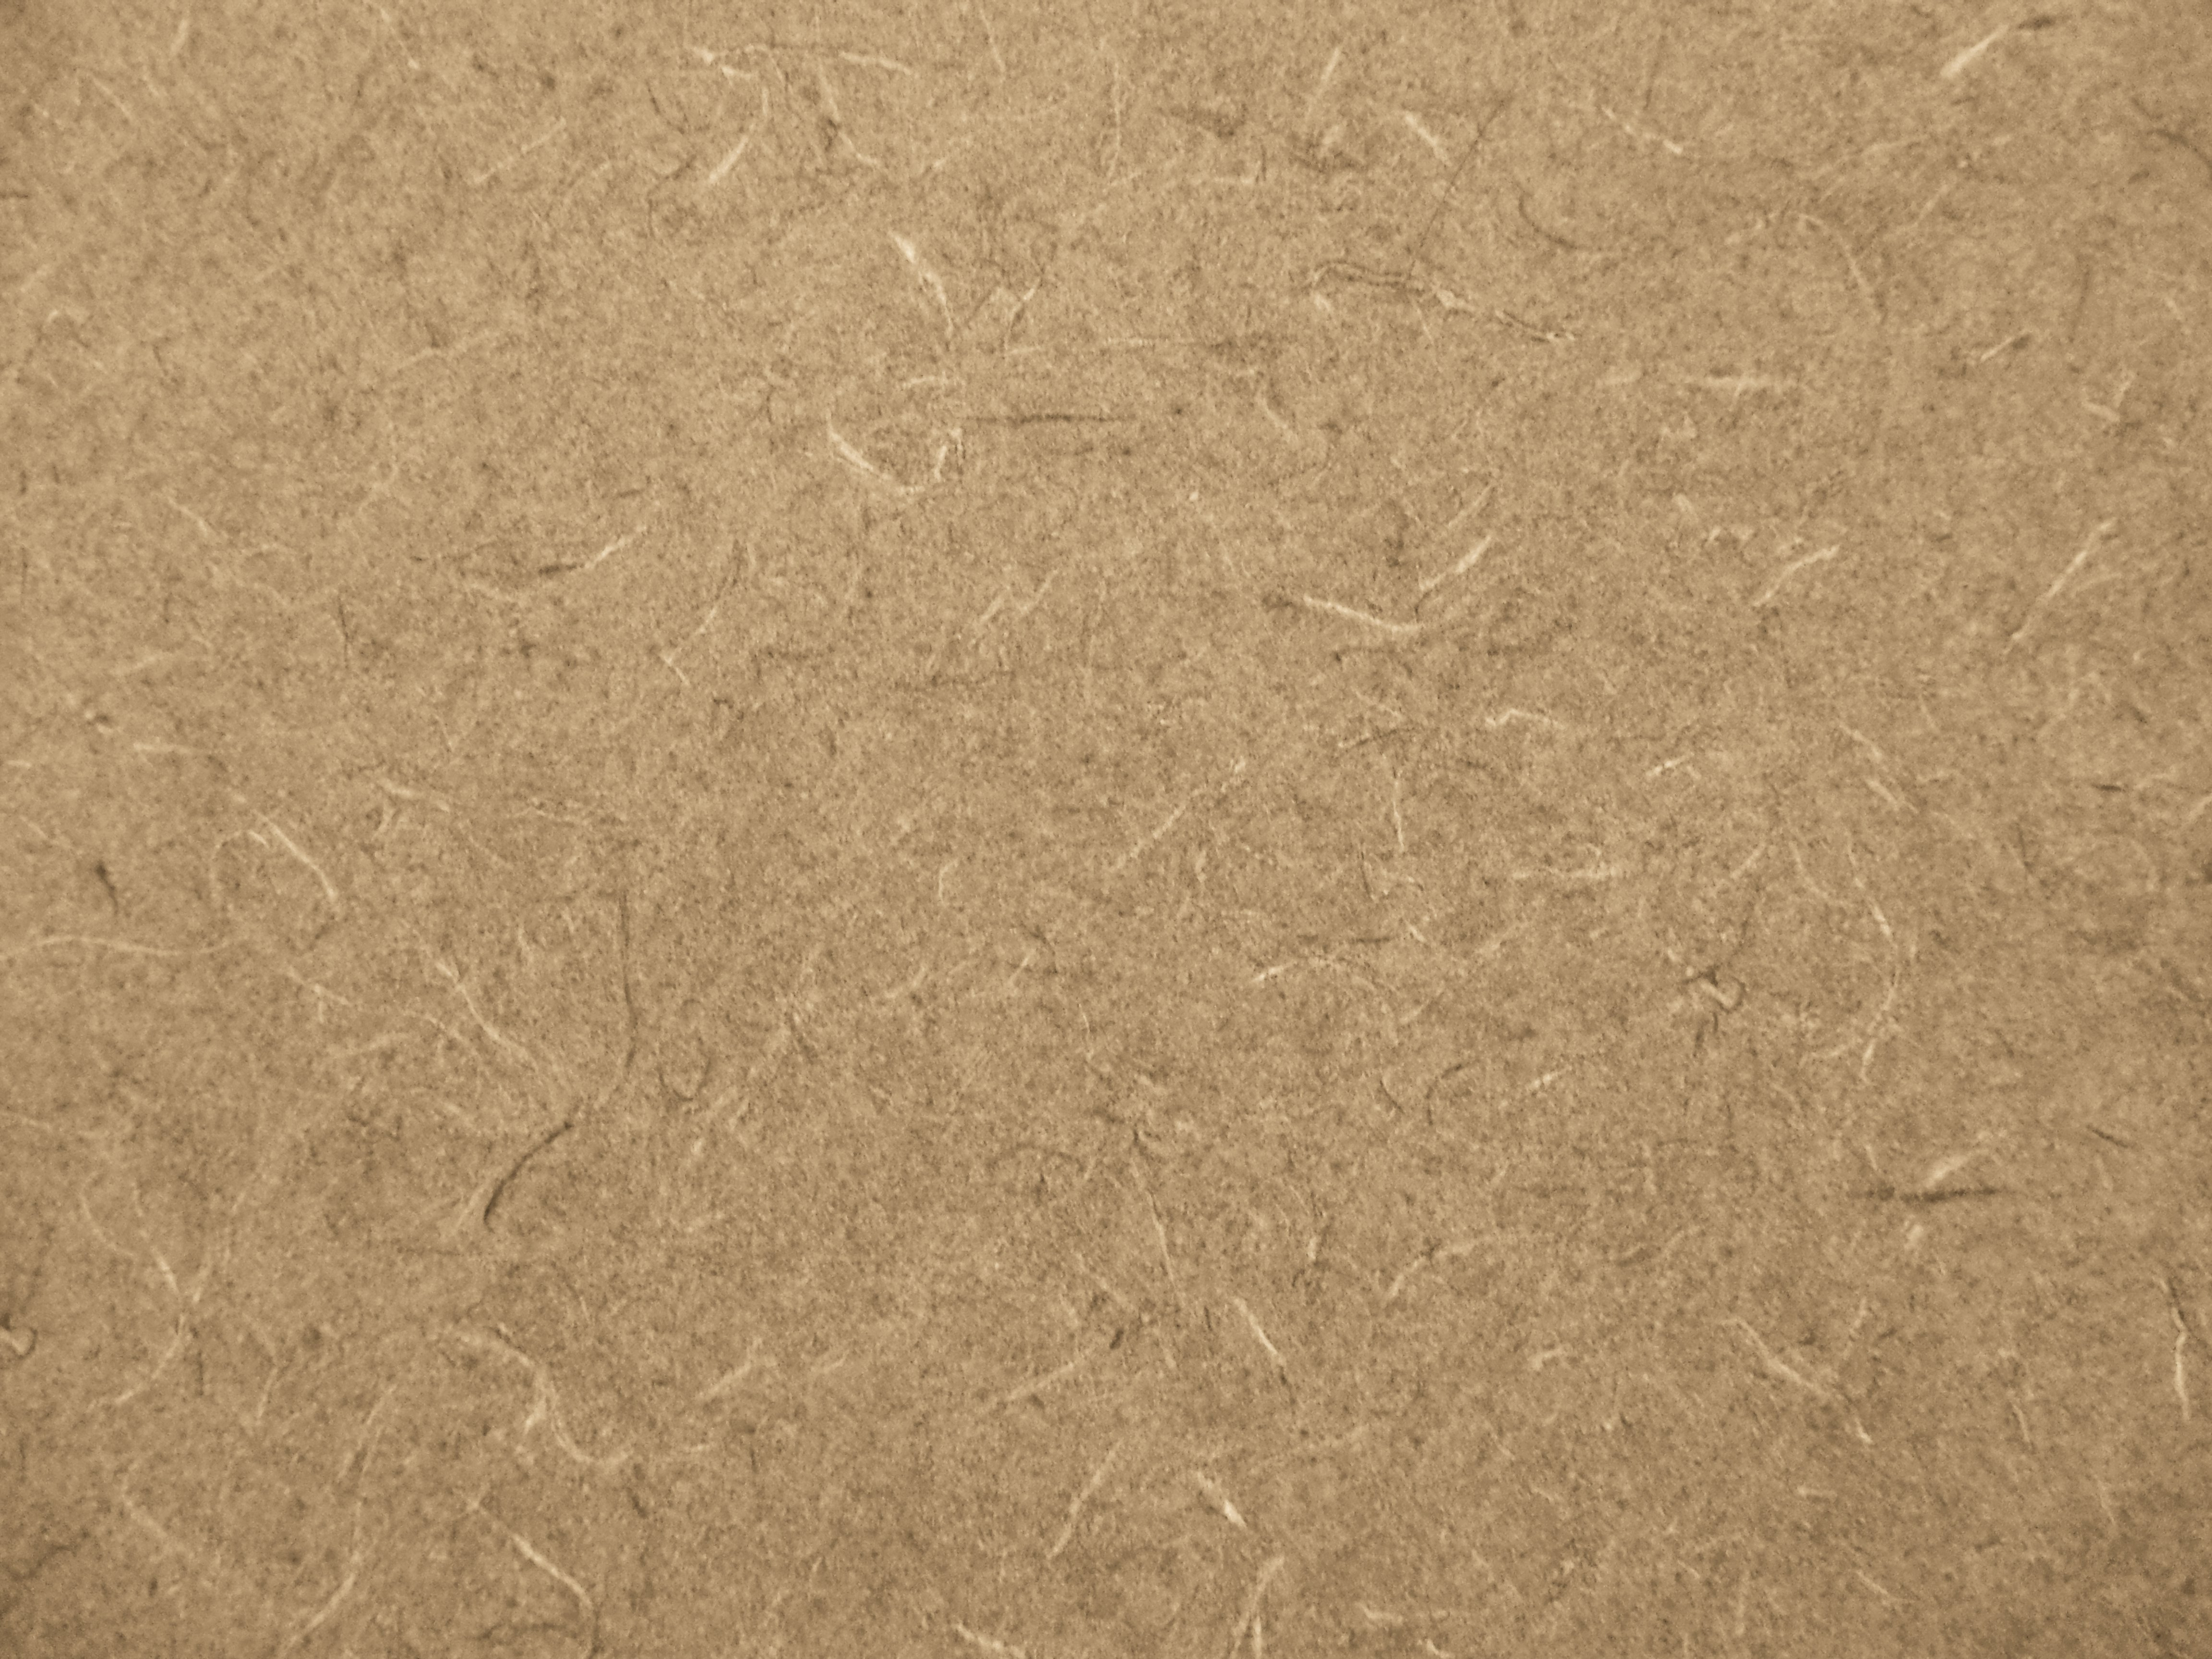 Tan Abstract Pattern Laminate Countertop Texture Picture Free